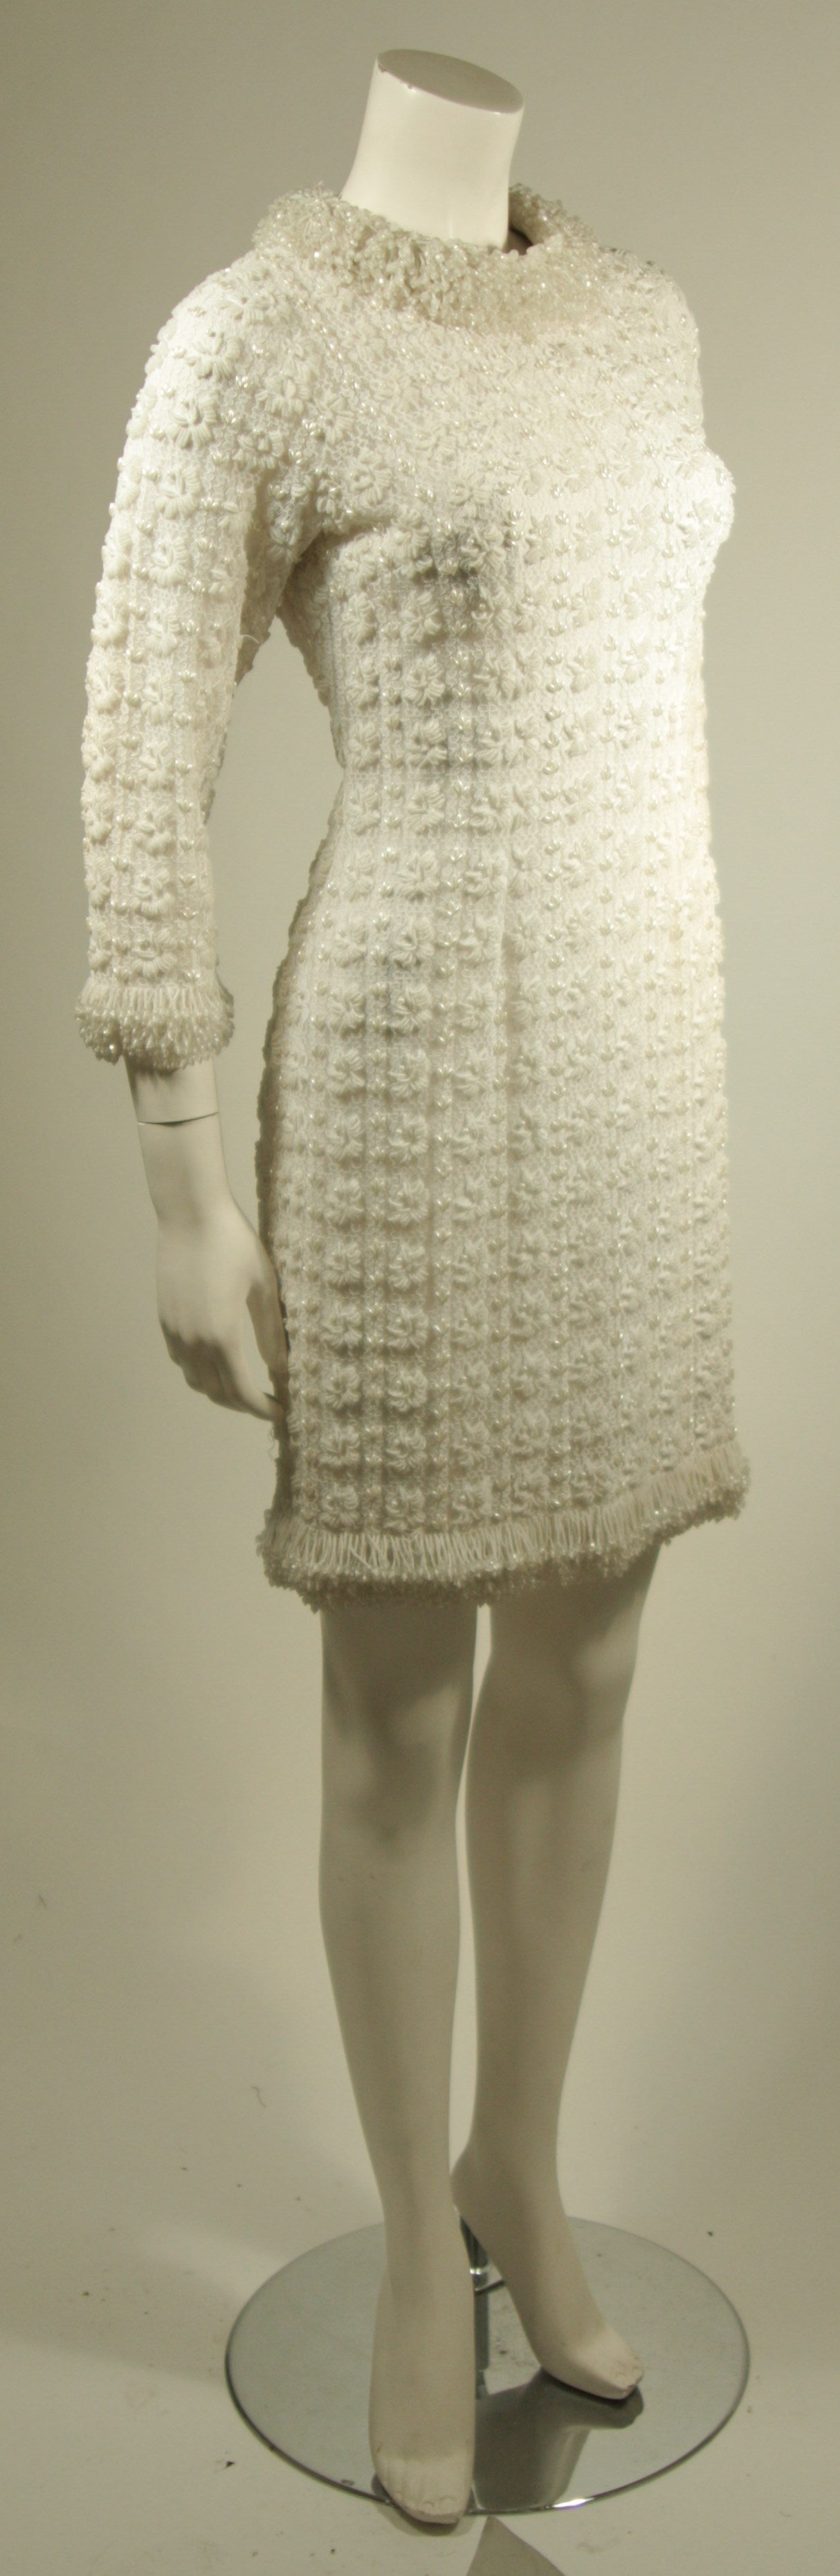 1960's White Beaded Cocktail Dress 4